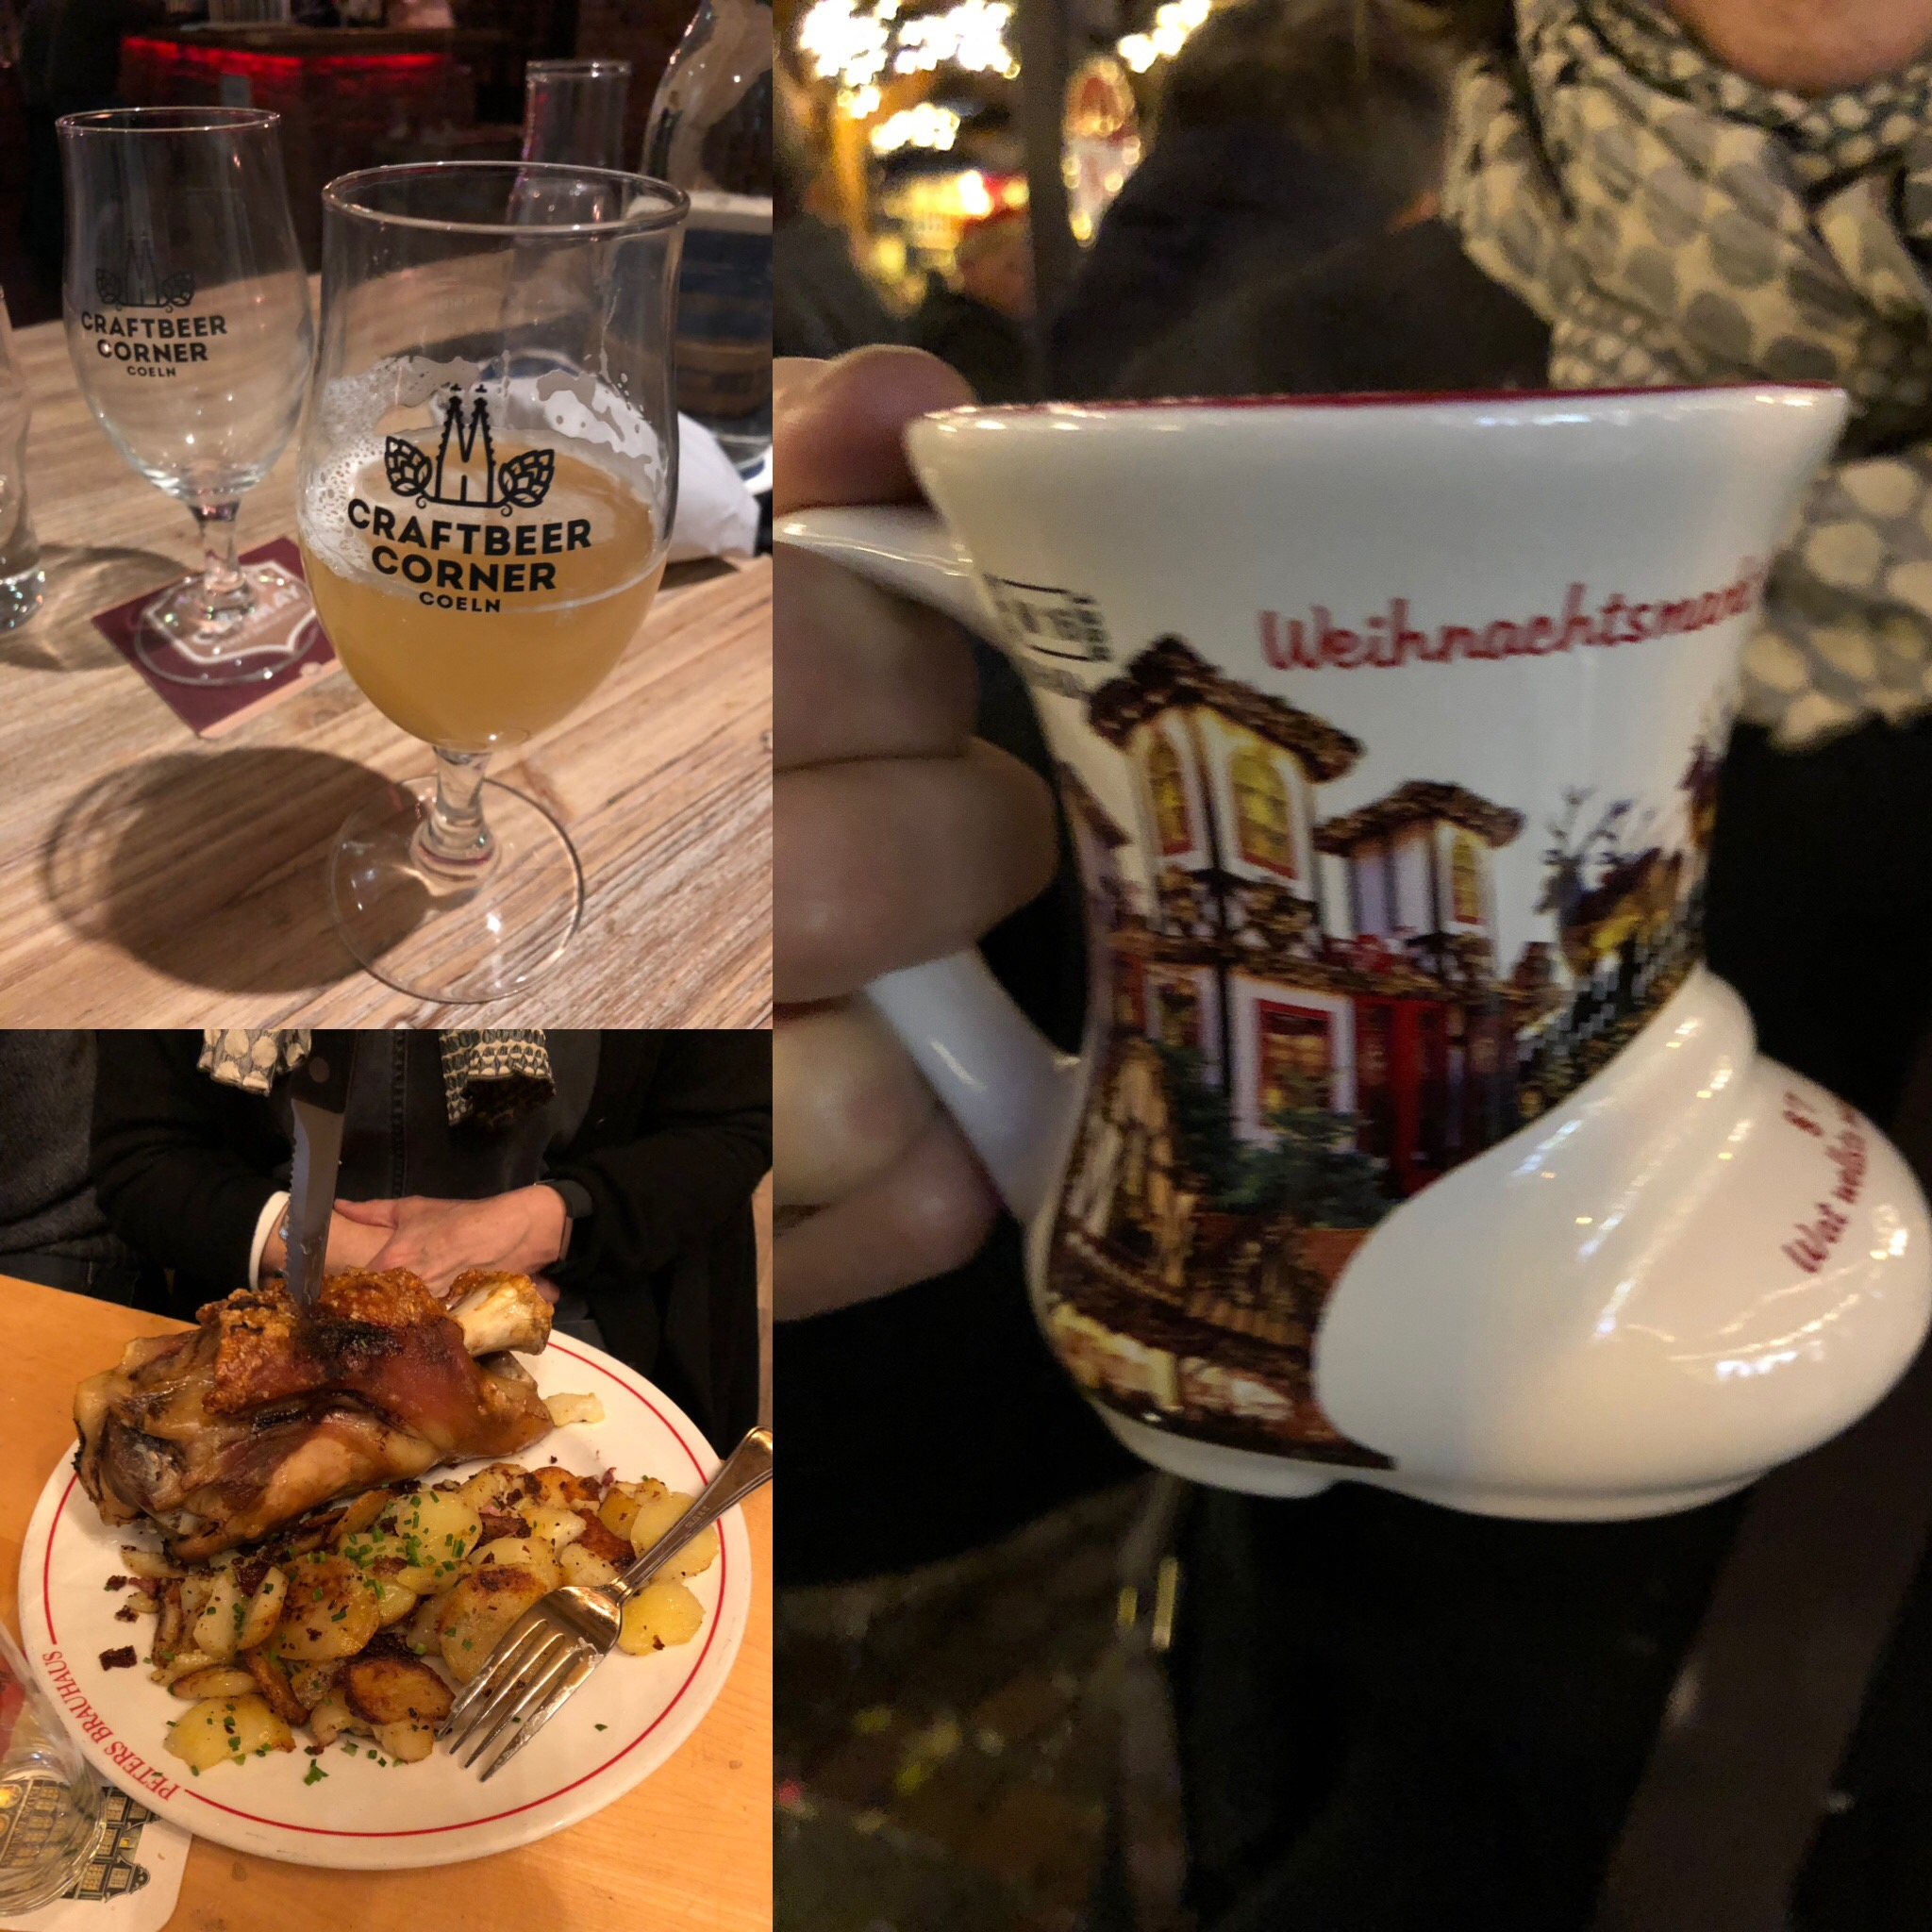 We Ate And Drank Well: Craft Beer, Schweinhaxen, Gluhwein